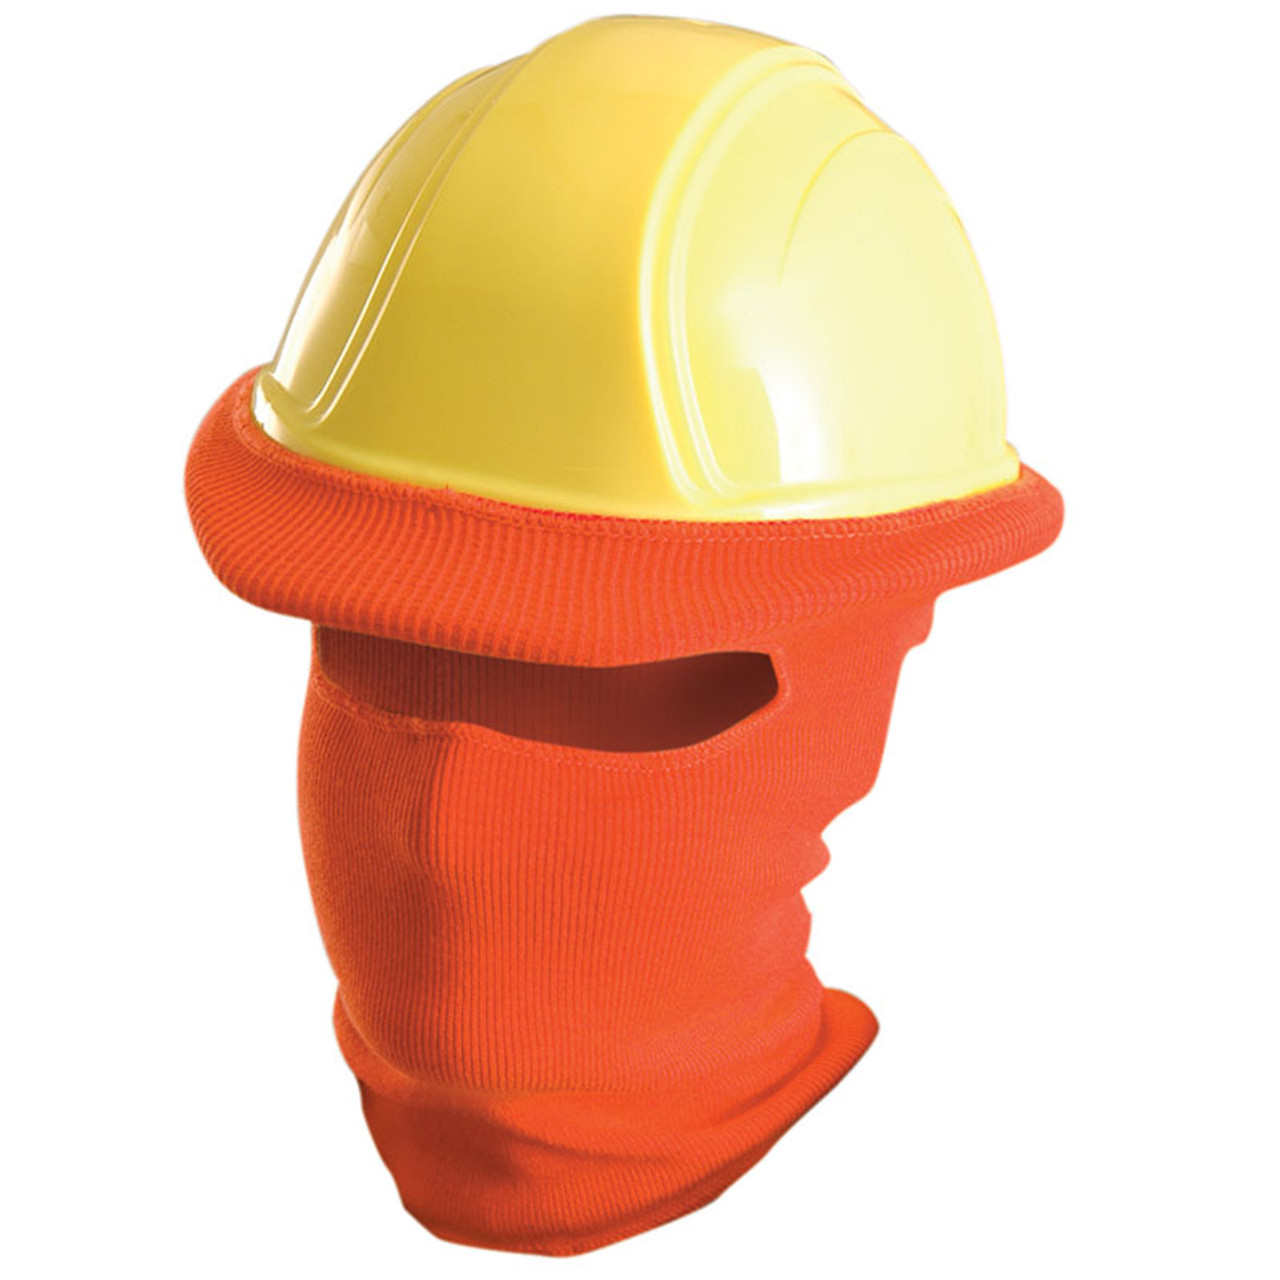 07185fa808f Occunomix Full Face Hard Hat Tube Liner LK810 Orange